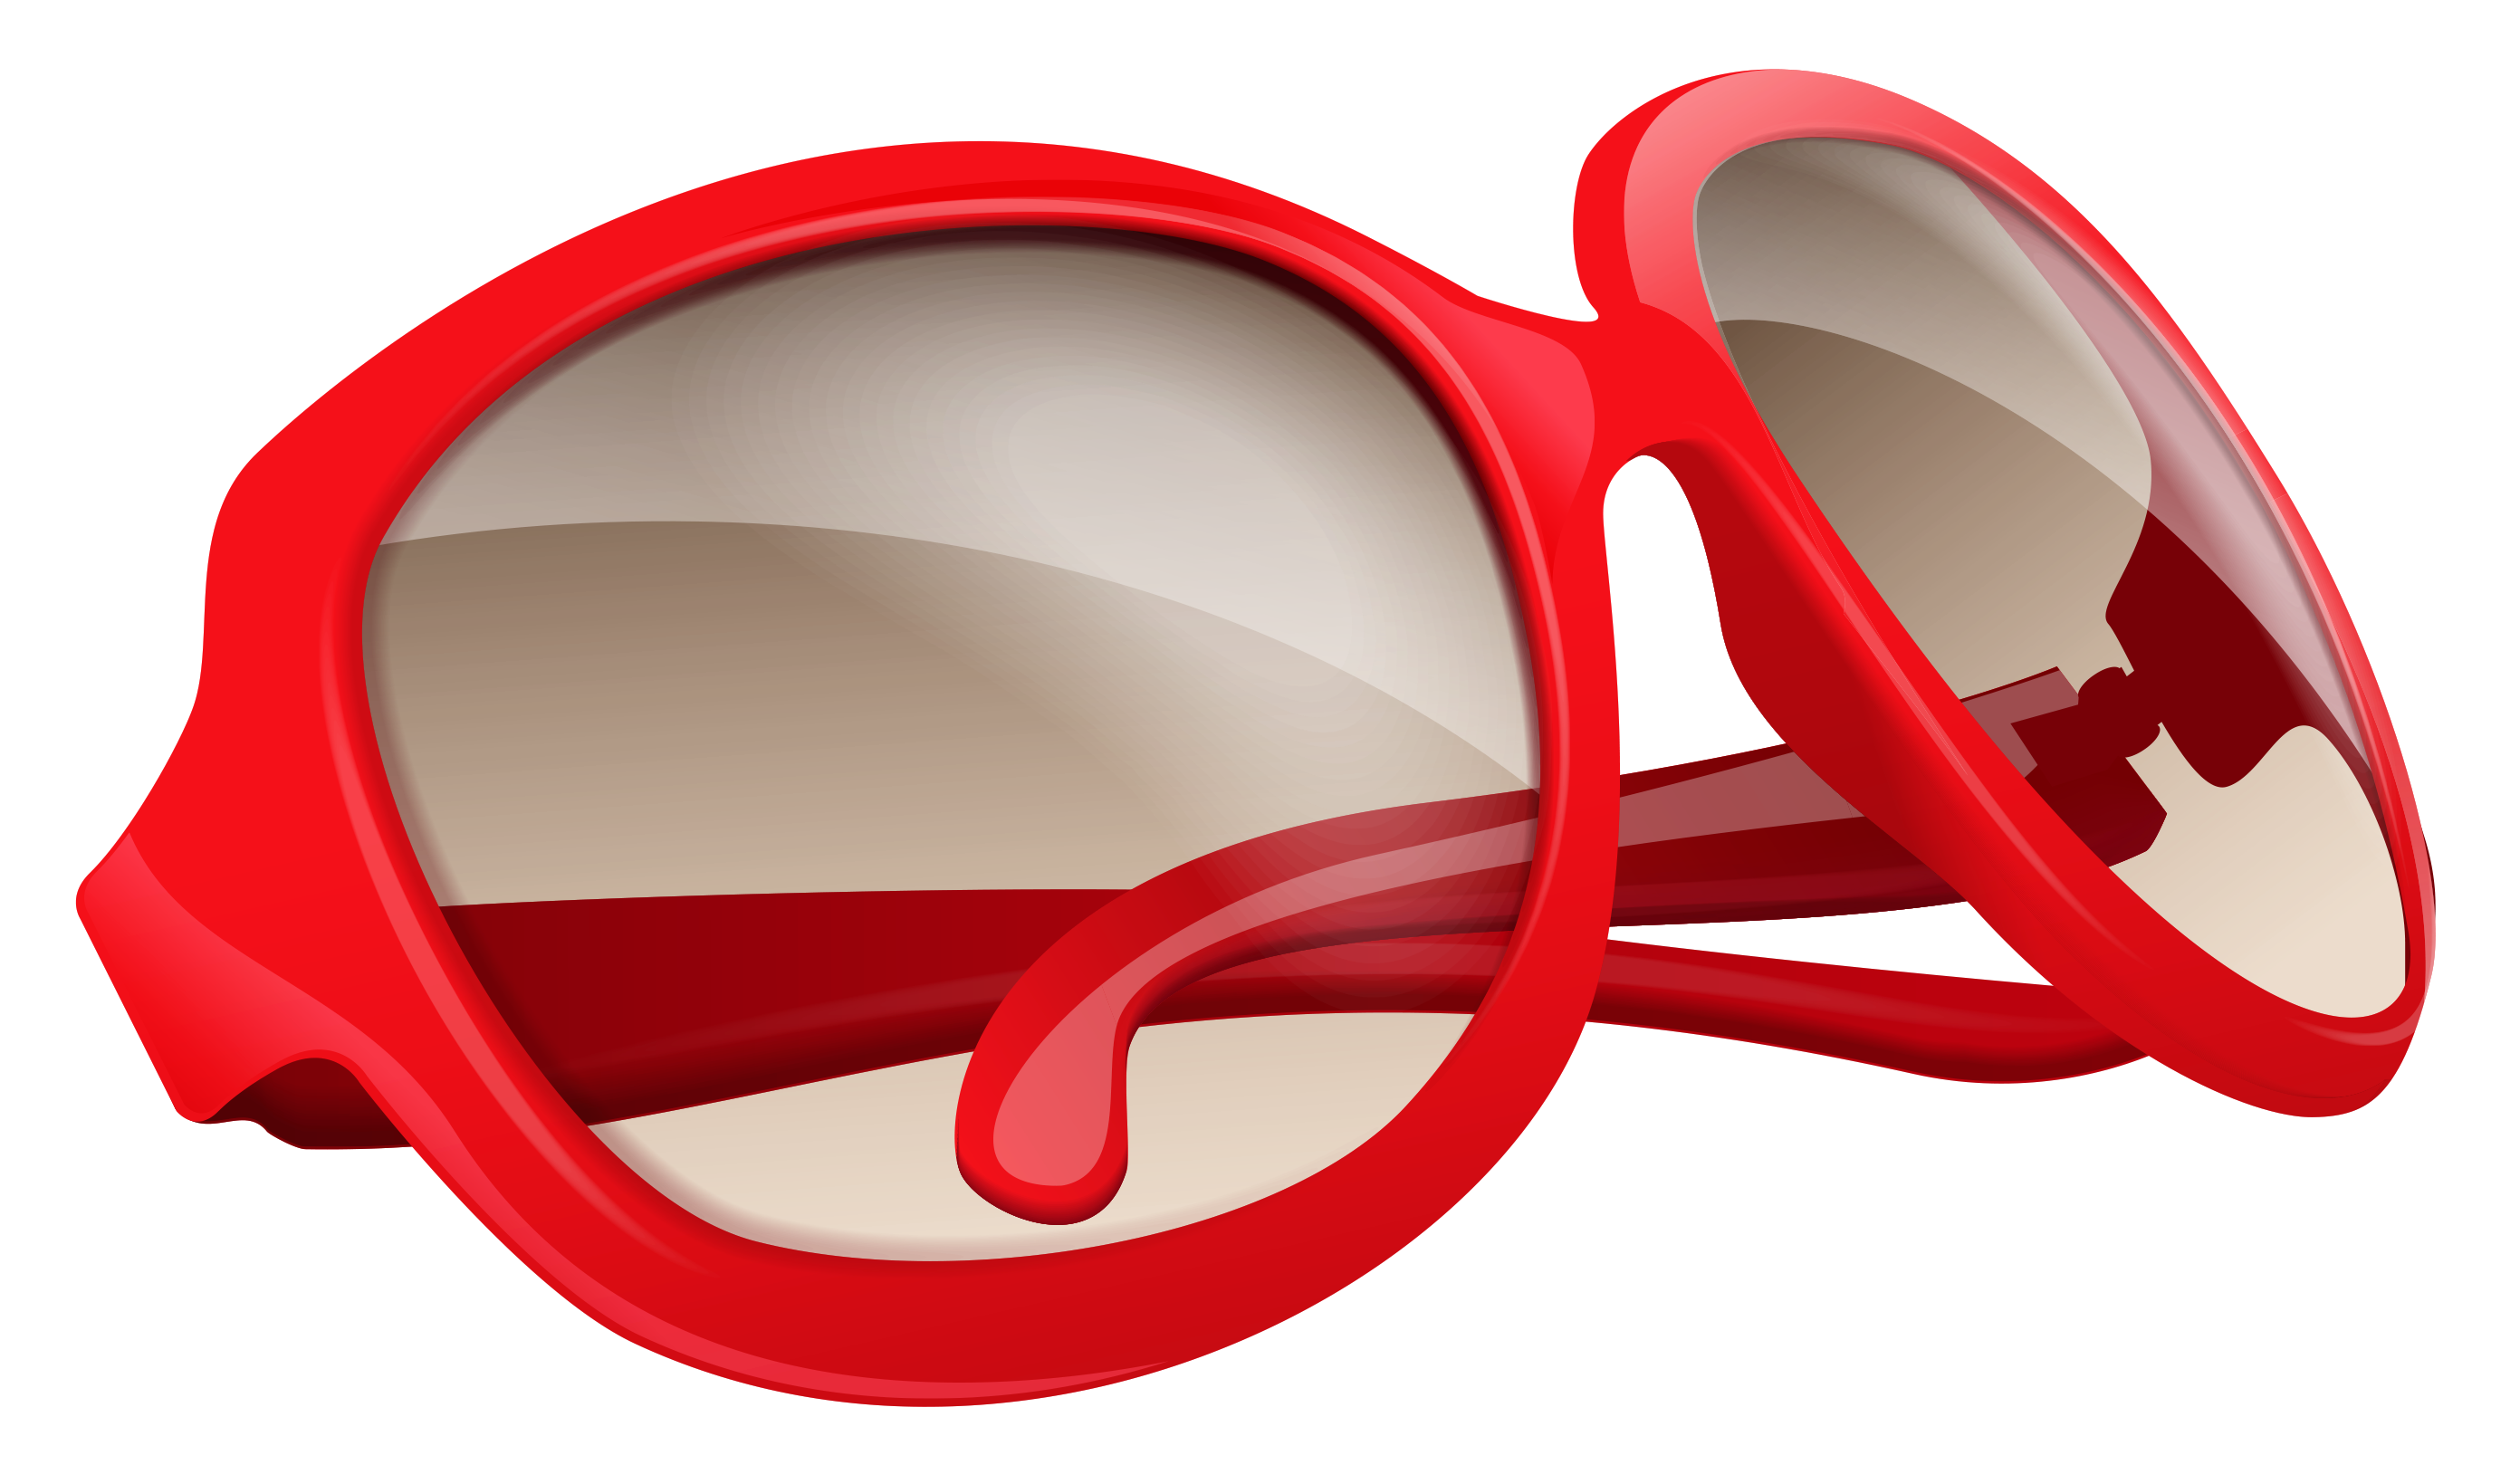 Red sunglasses png image. Hearts clipart sunglass